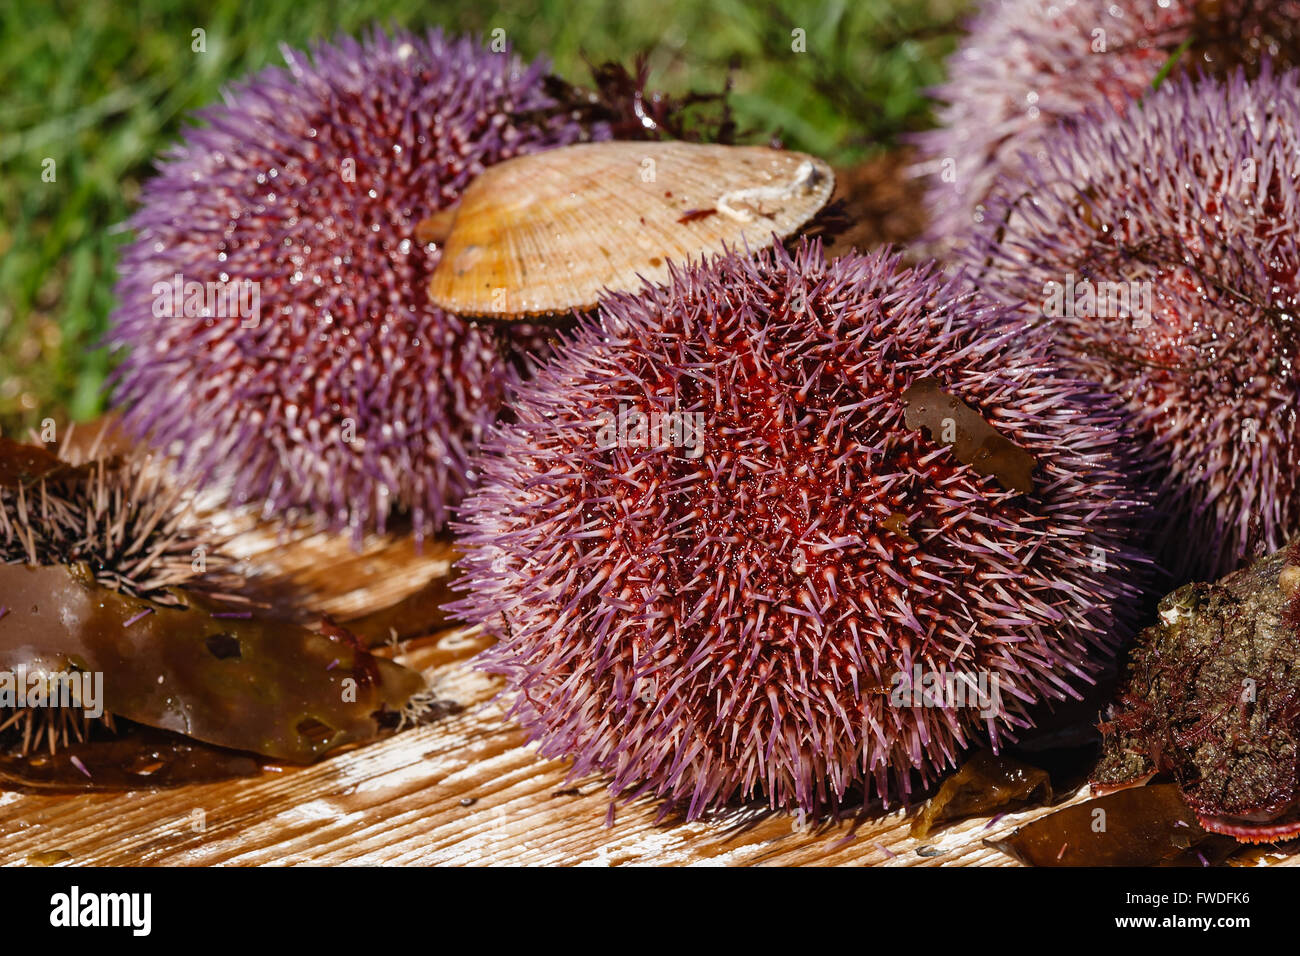 Sea hedgehogs and scallops which have been just caught in the sea - Stock Image